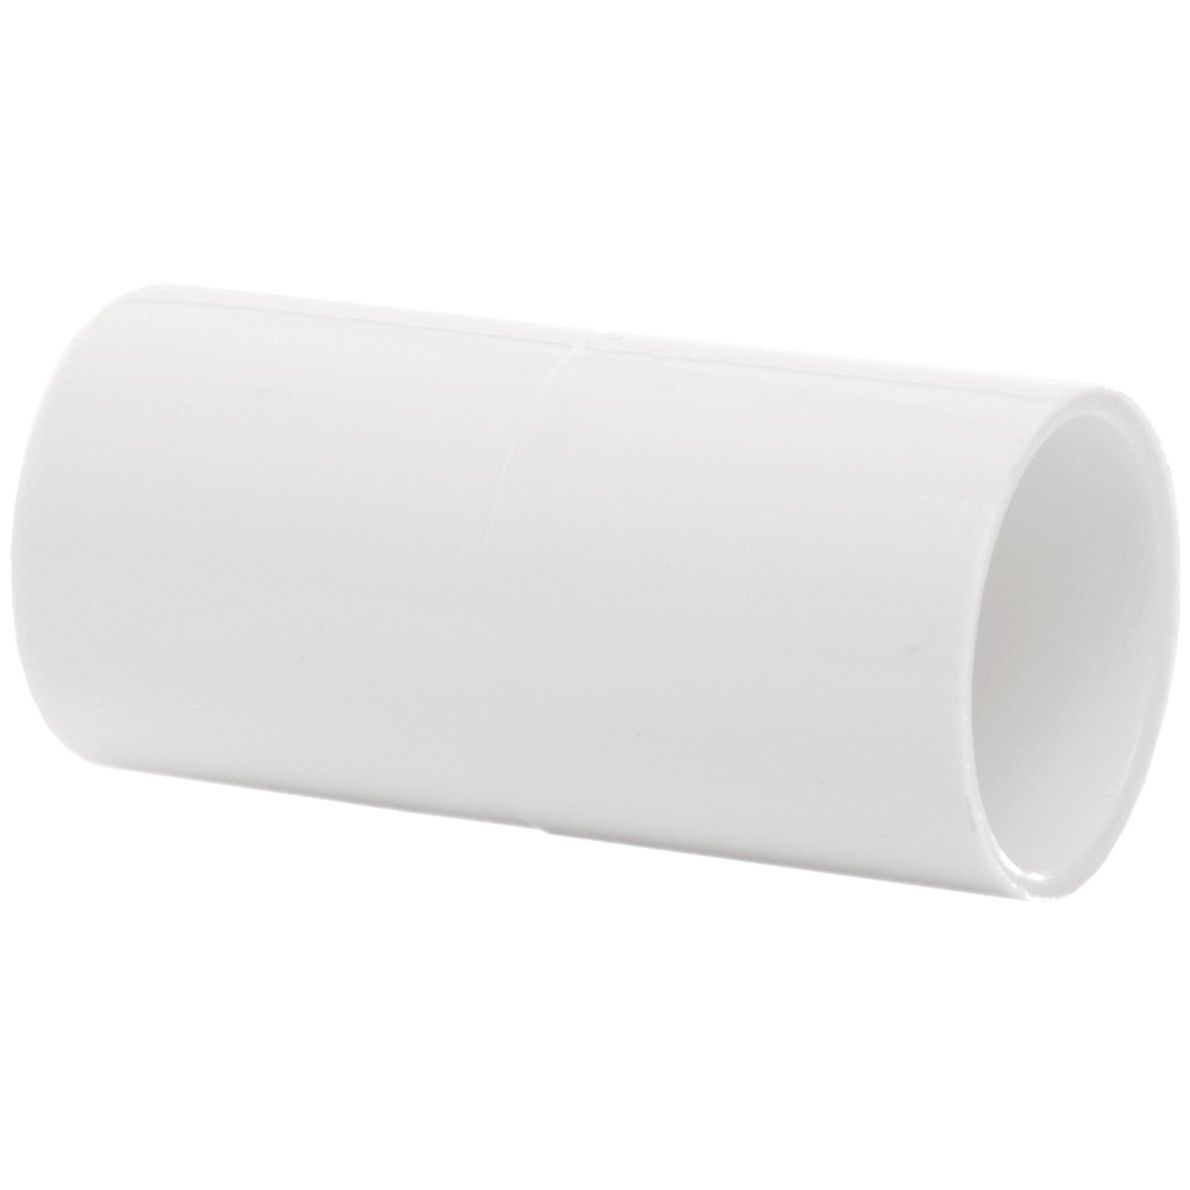 Polypipe 21.5mm Solvent Weld Overflow Connector - White